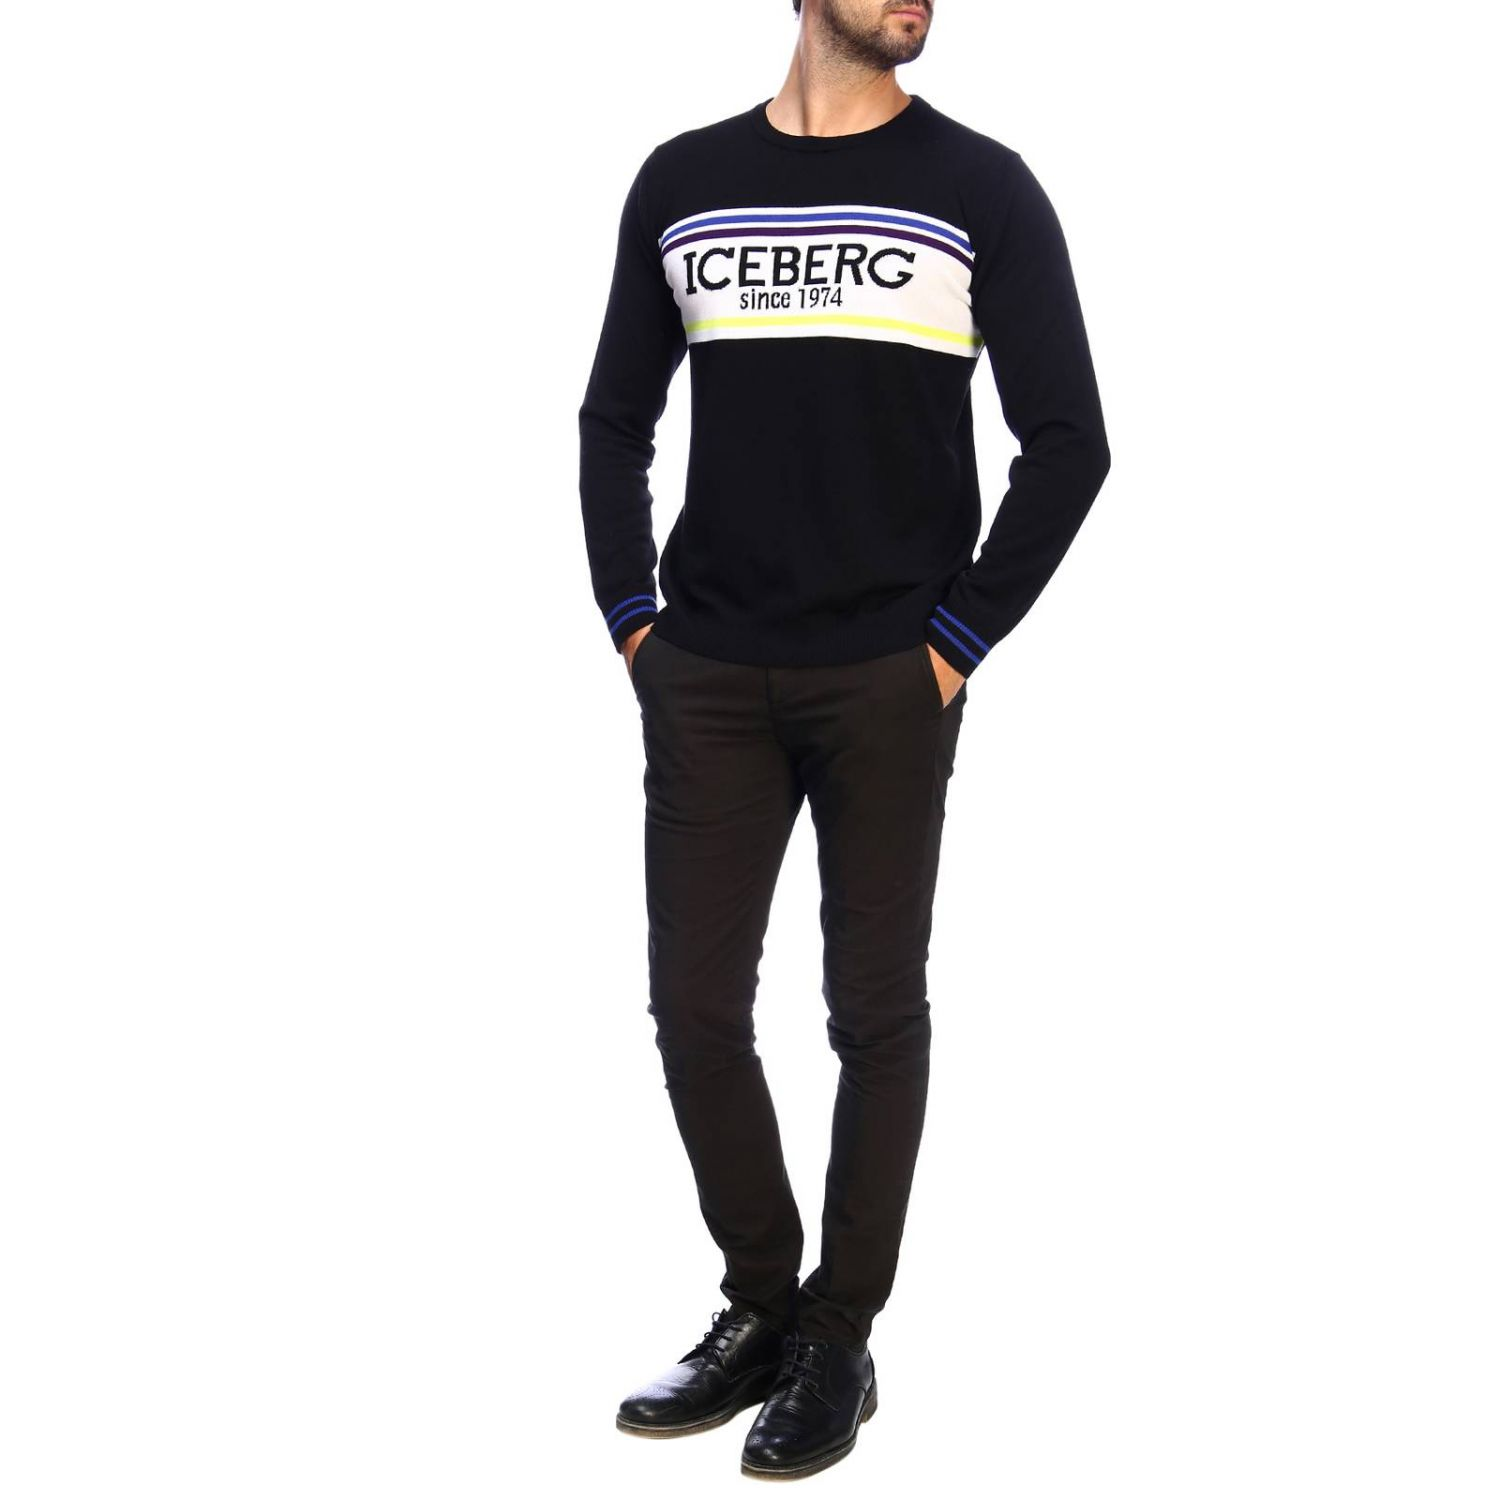 Sweater Iceberg: Sweater men Iceberg black 2